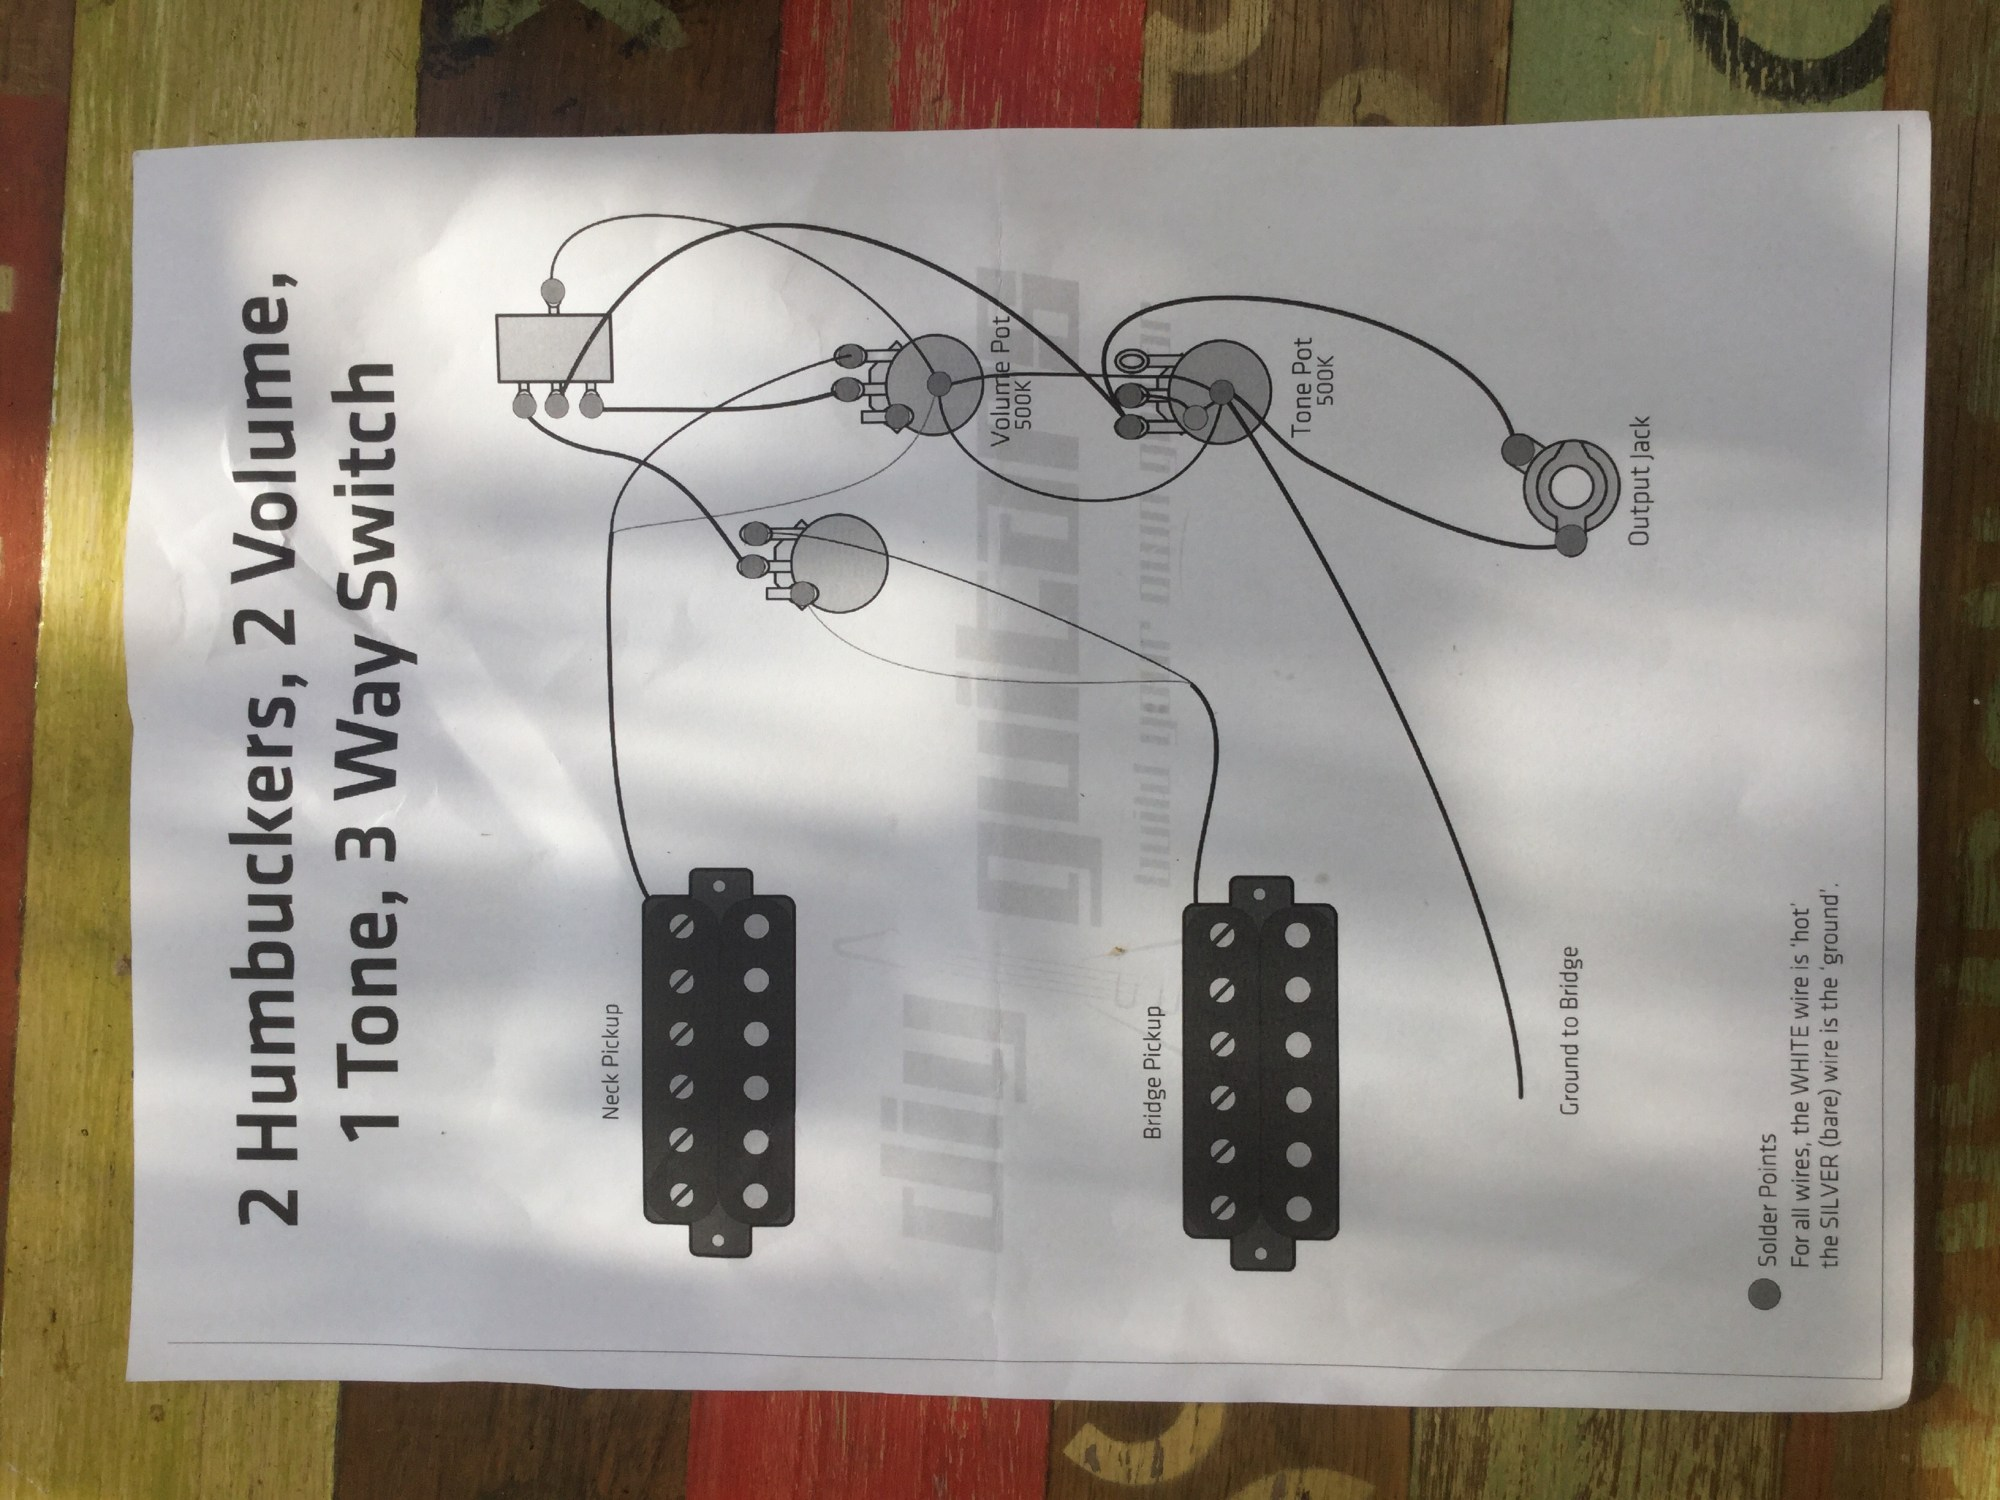 hight resolution of wiring diagram for flying v diy guitars image jpg